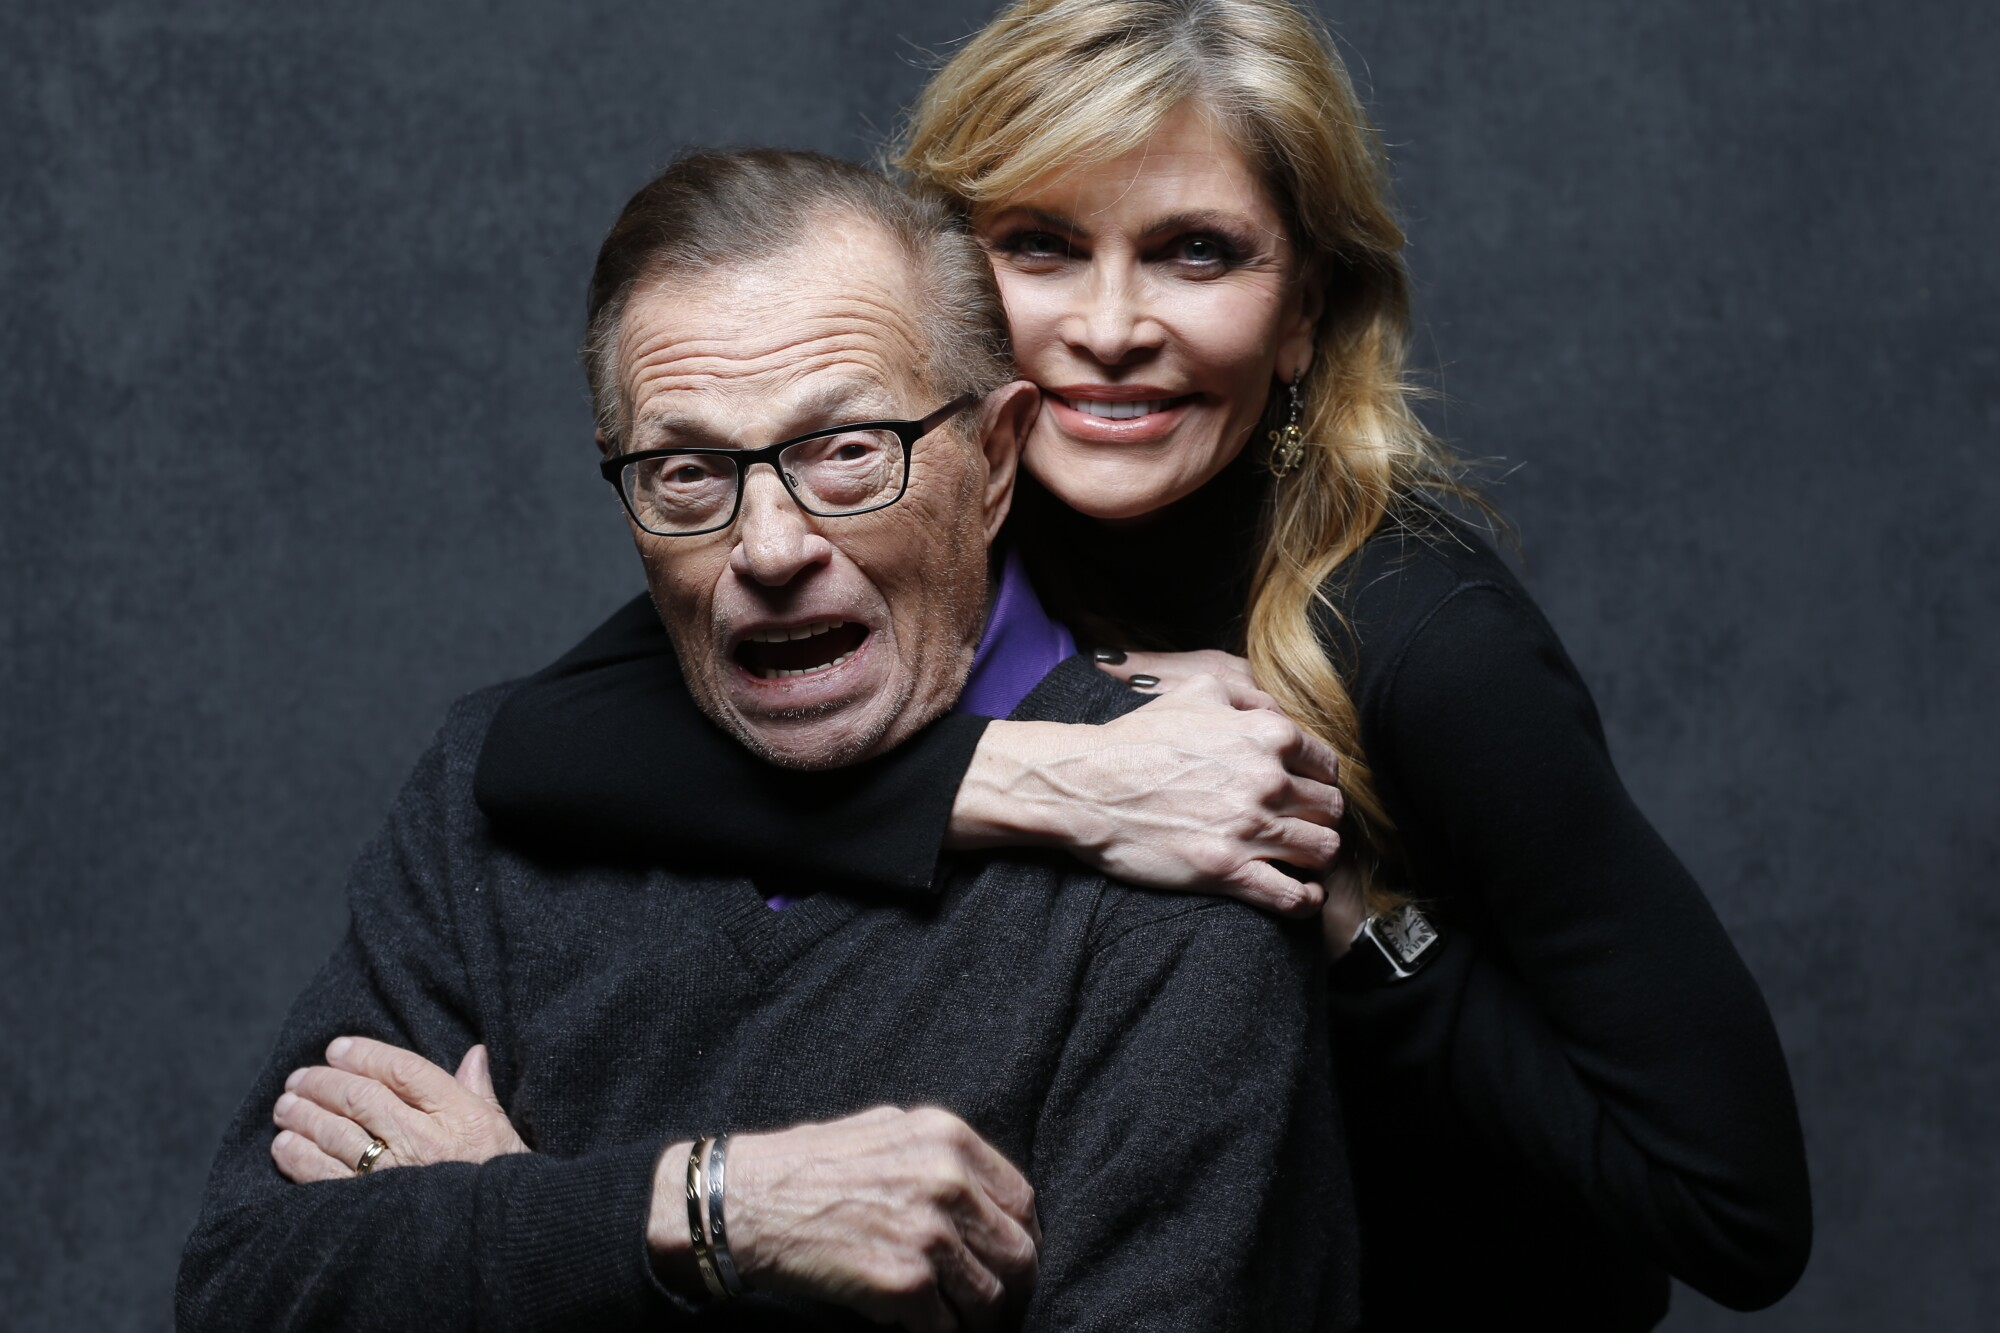 Larry King with wife Shawn King at the Sundance Film Festival in 2015